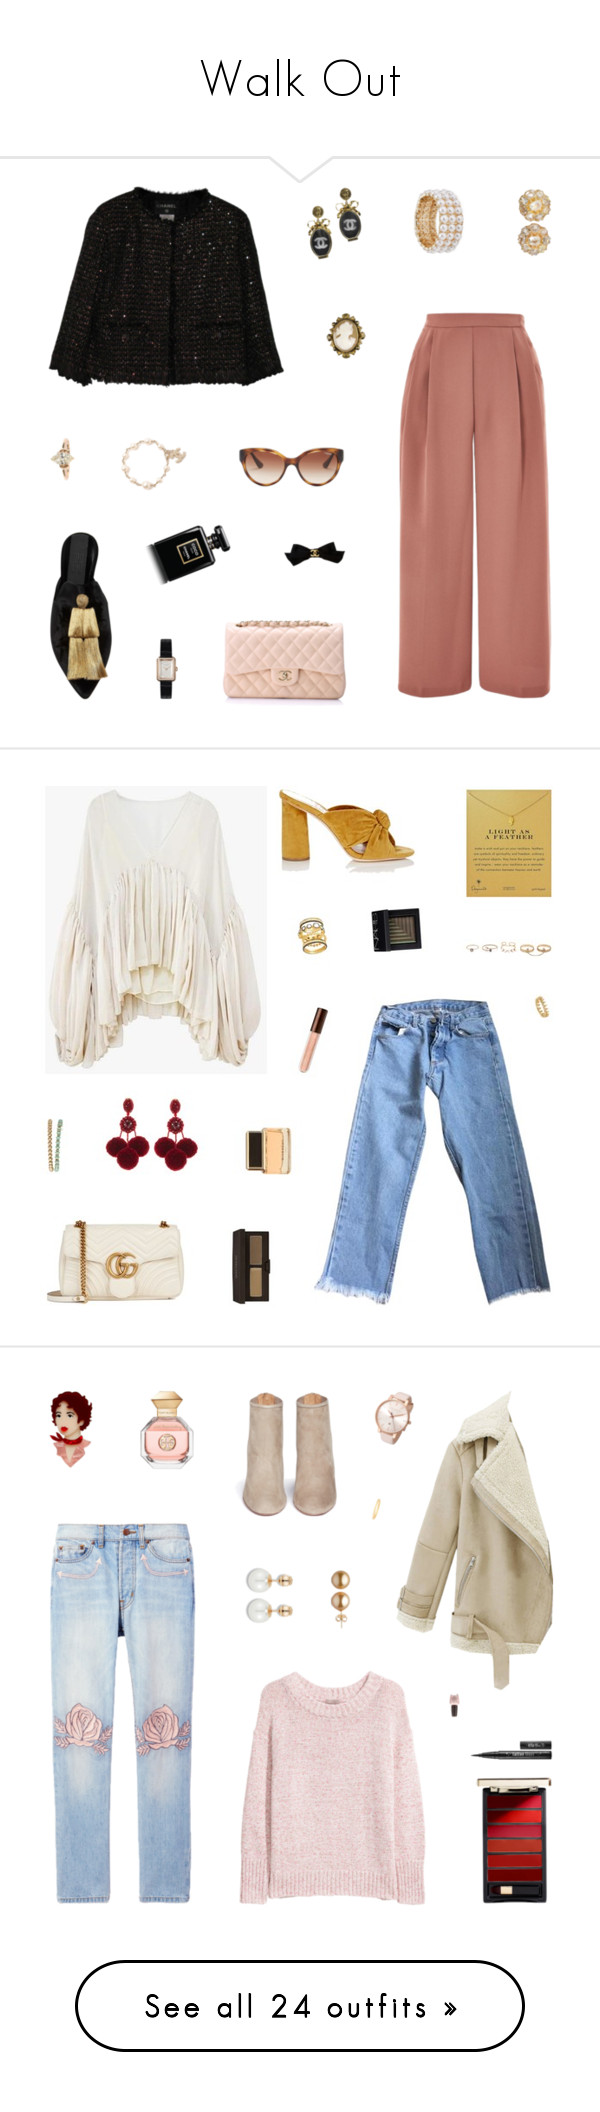 """Walk Out"" by belenloperfido ❤ liked on Polyvore featuring Sanayi 313, Topshop, Chanel, Design Lab, Vogue Eyewear, Brandy Melville, Loeffler Randall, Gucci, Dogeared and Oscar de la Renta"